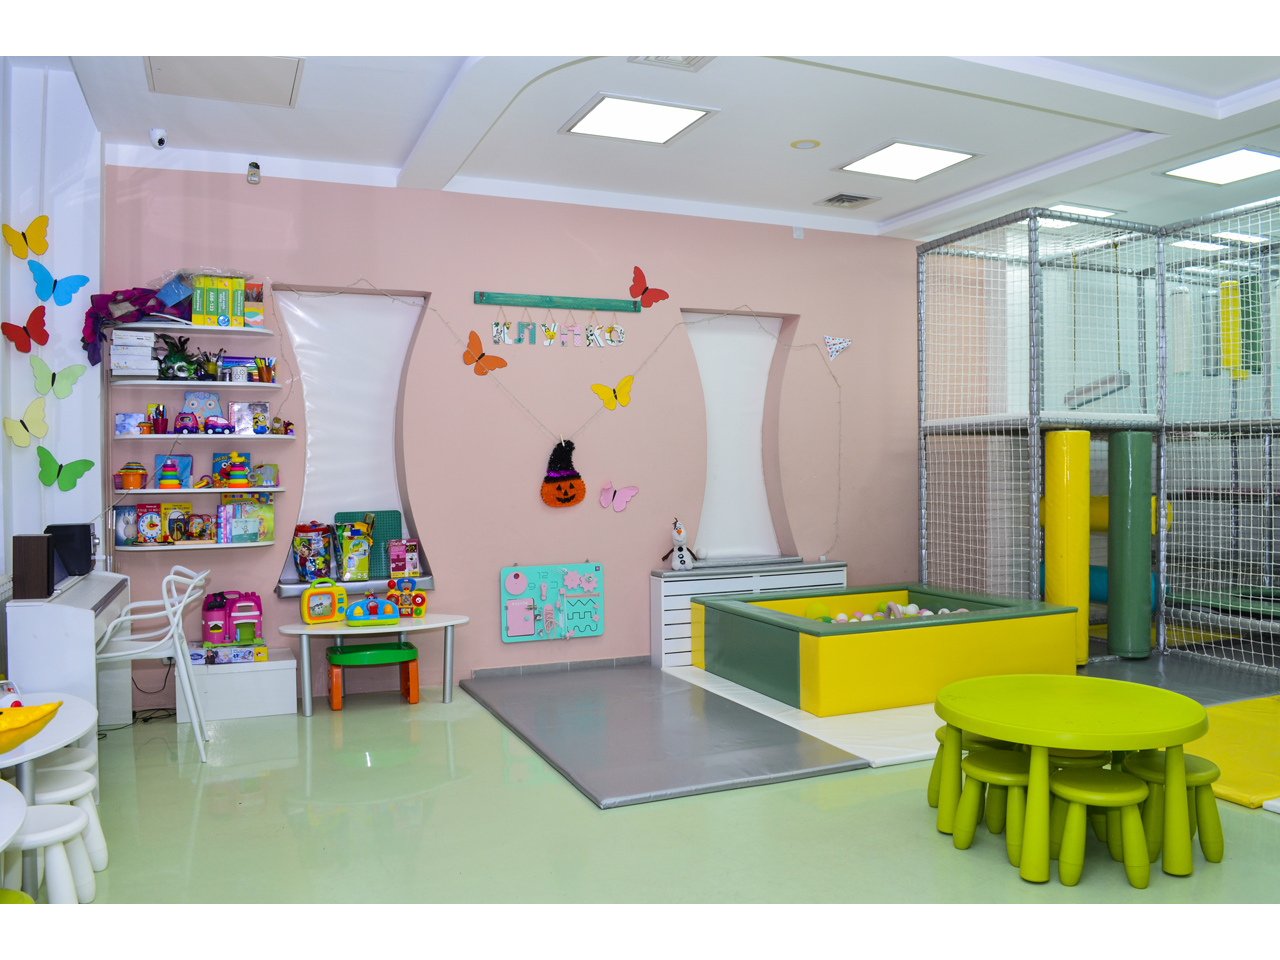 KLUPKO KINDERGARTEN Kids birthdays Beograd